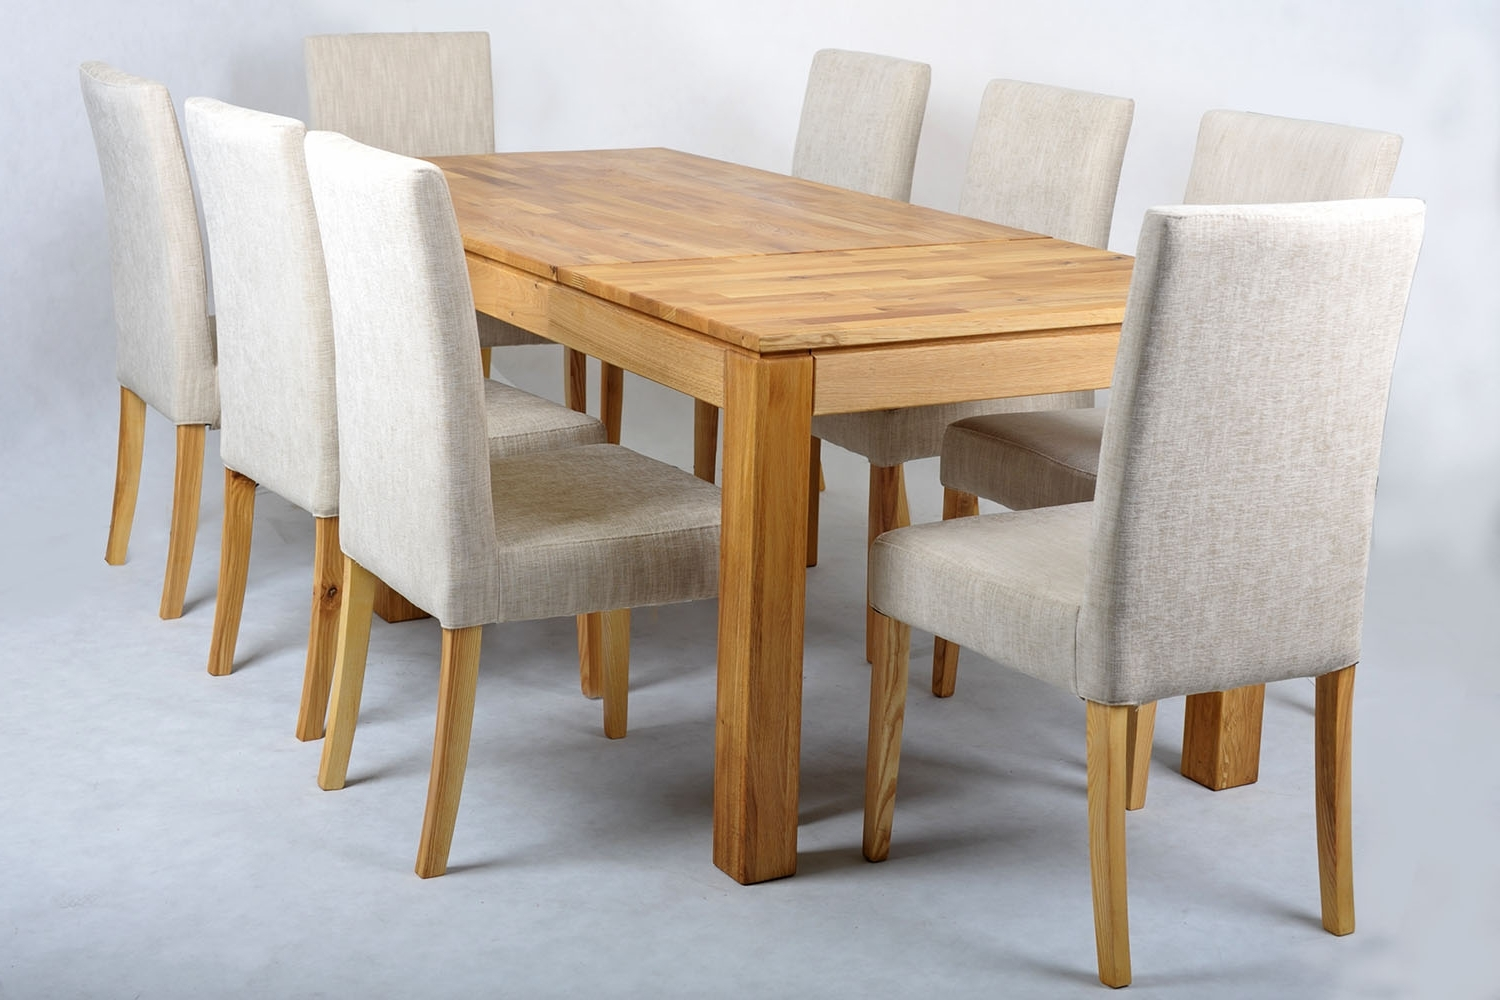 58 Extended Dining Table Sets, Townhouse Oval Dark Wood Extending within Recent Extendable Dining Tables With 8 Seats